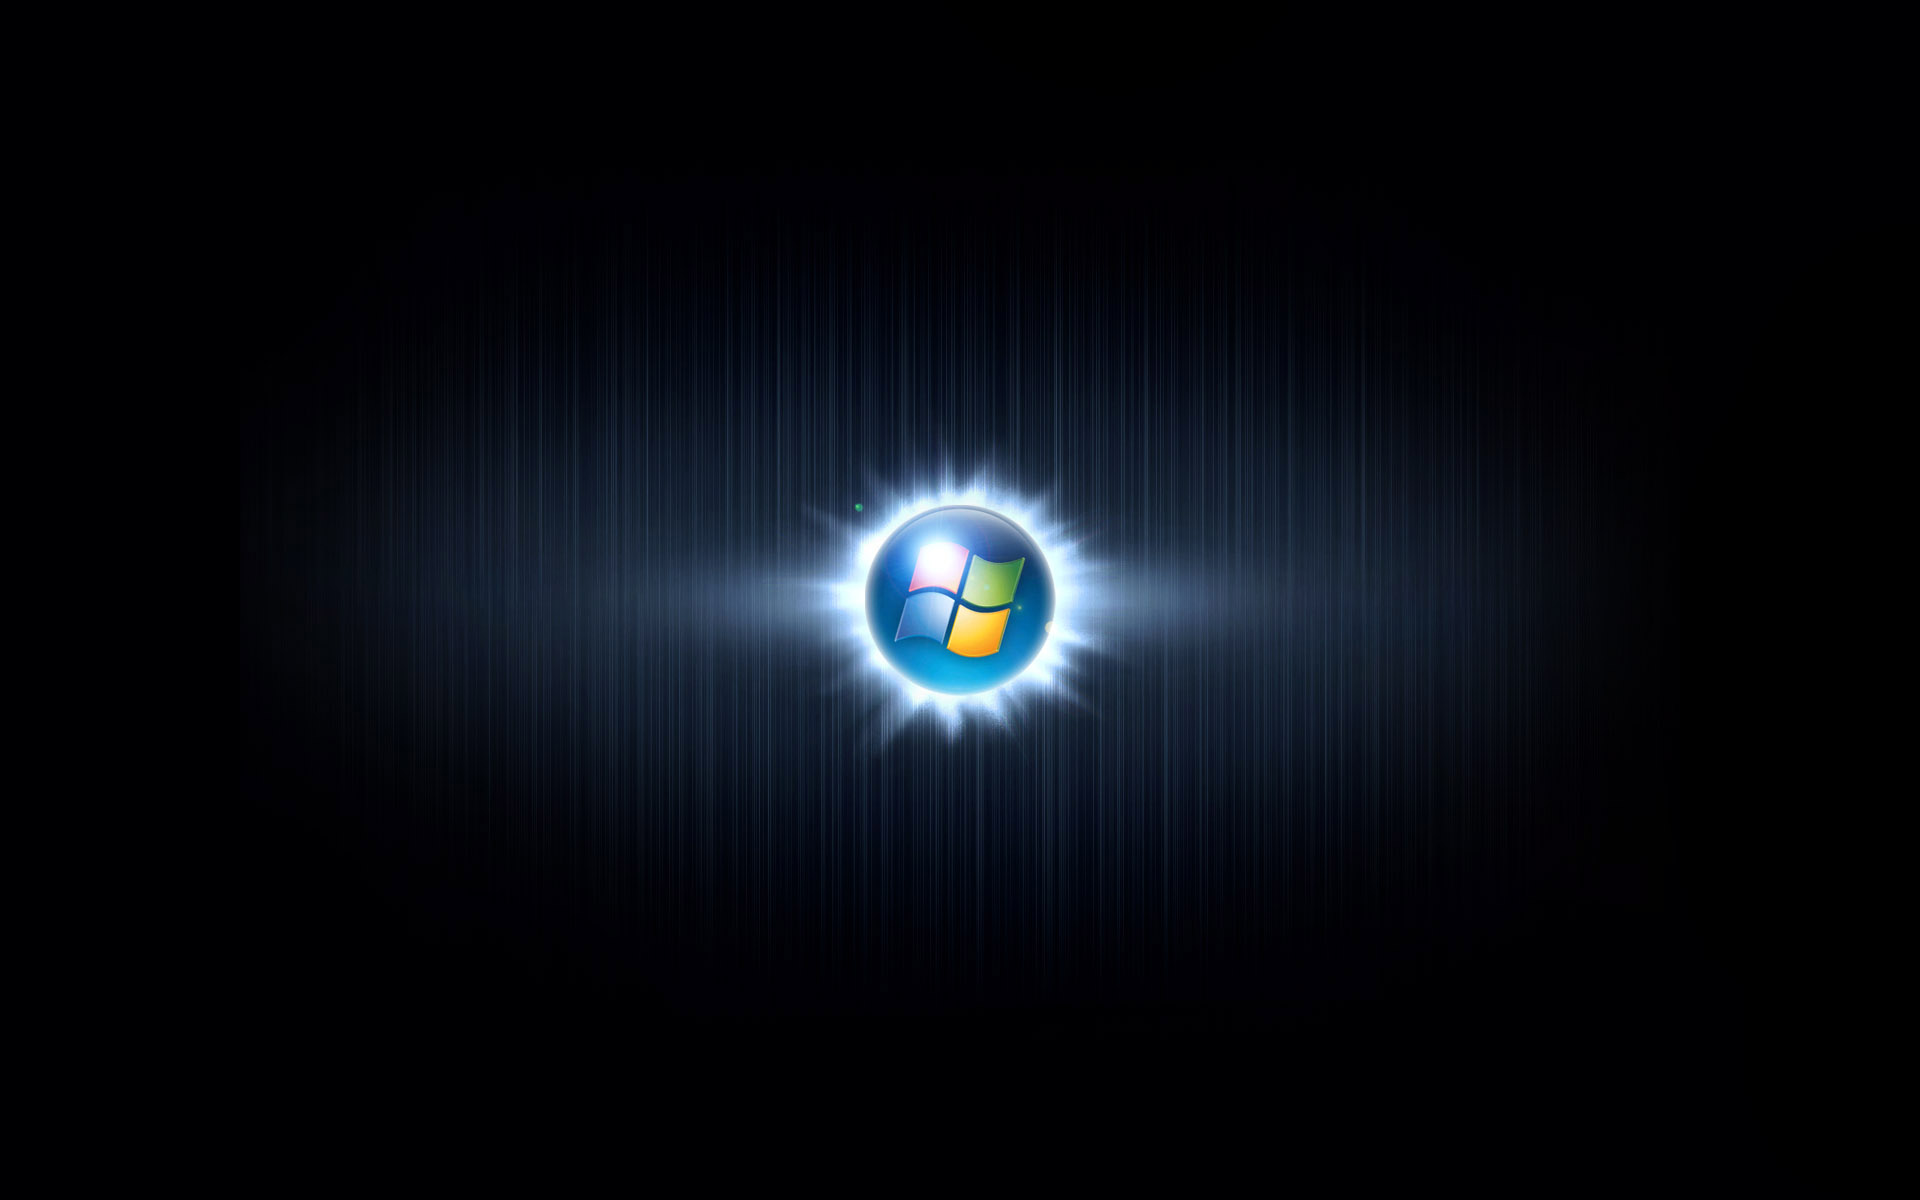 Windows Hd 4011 Hd Wallpaper